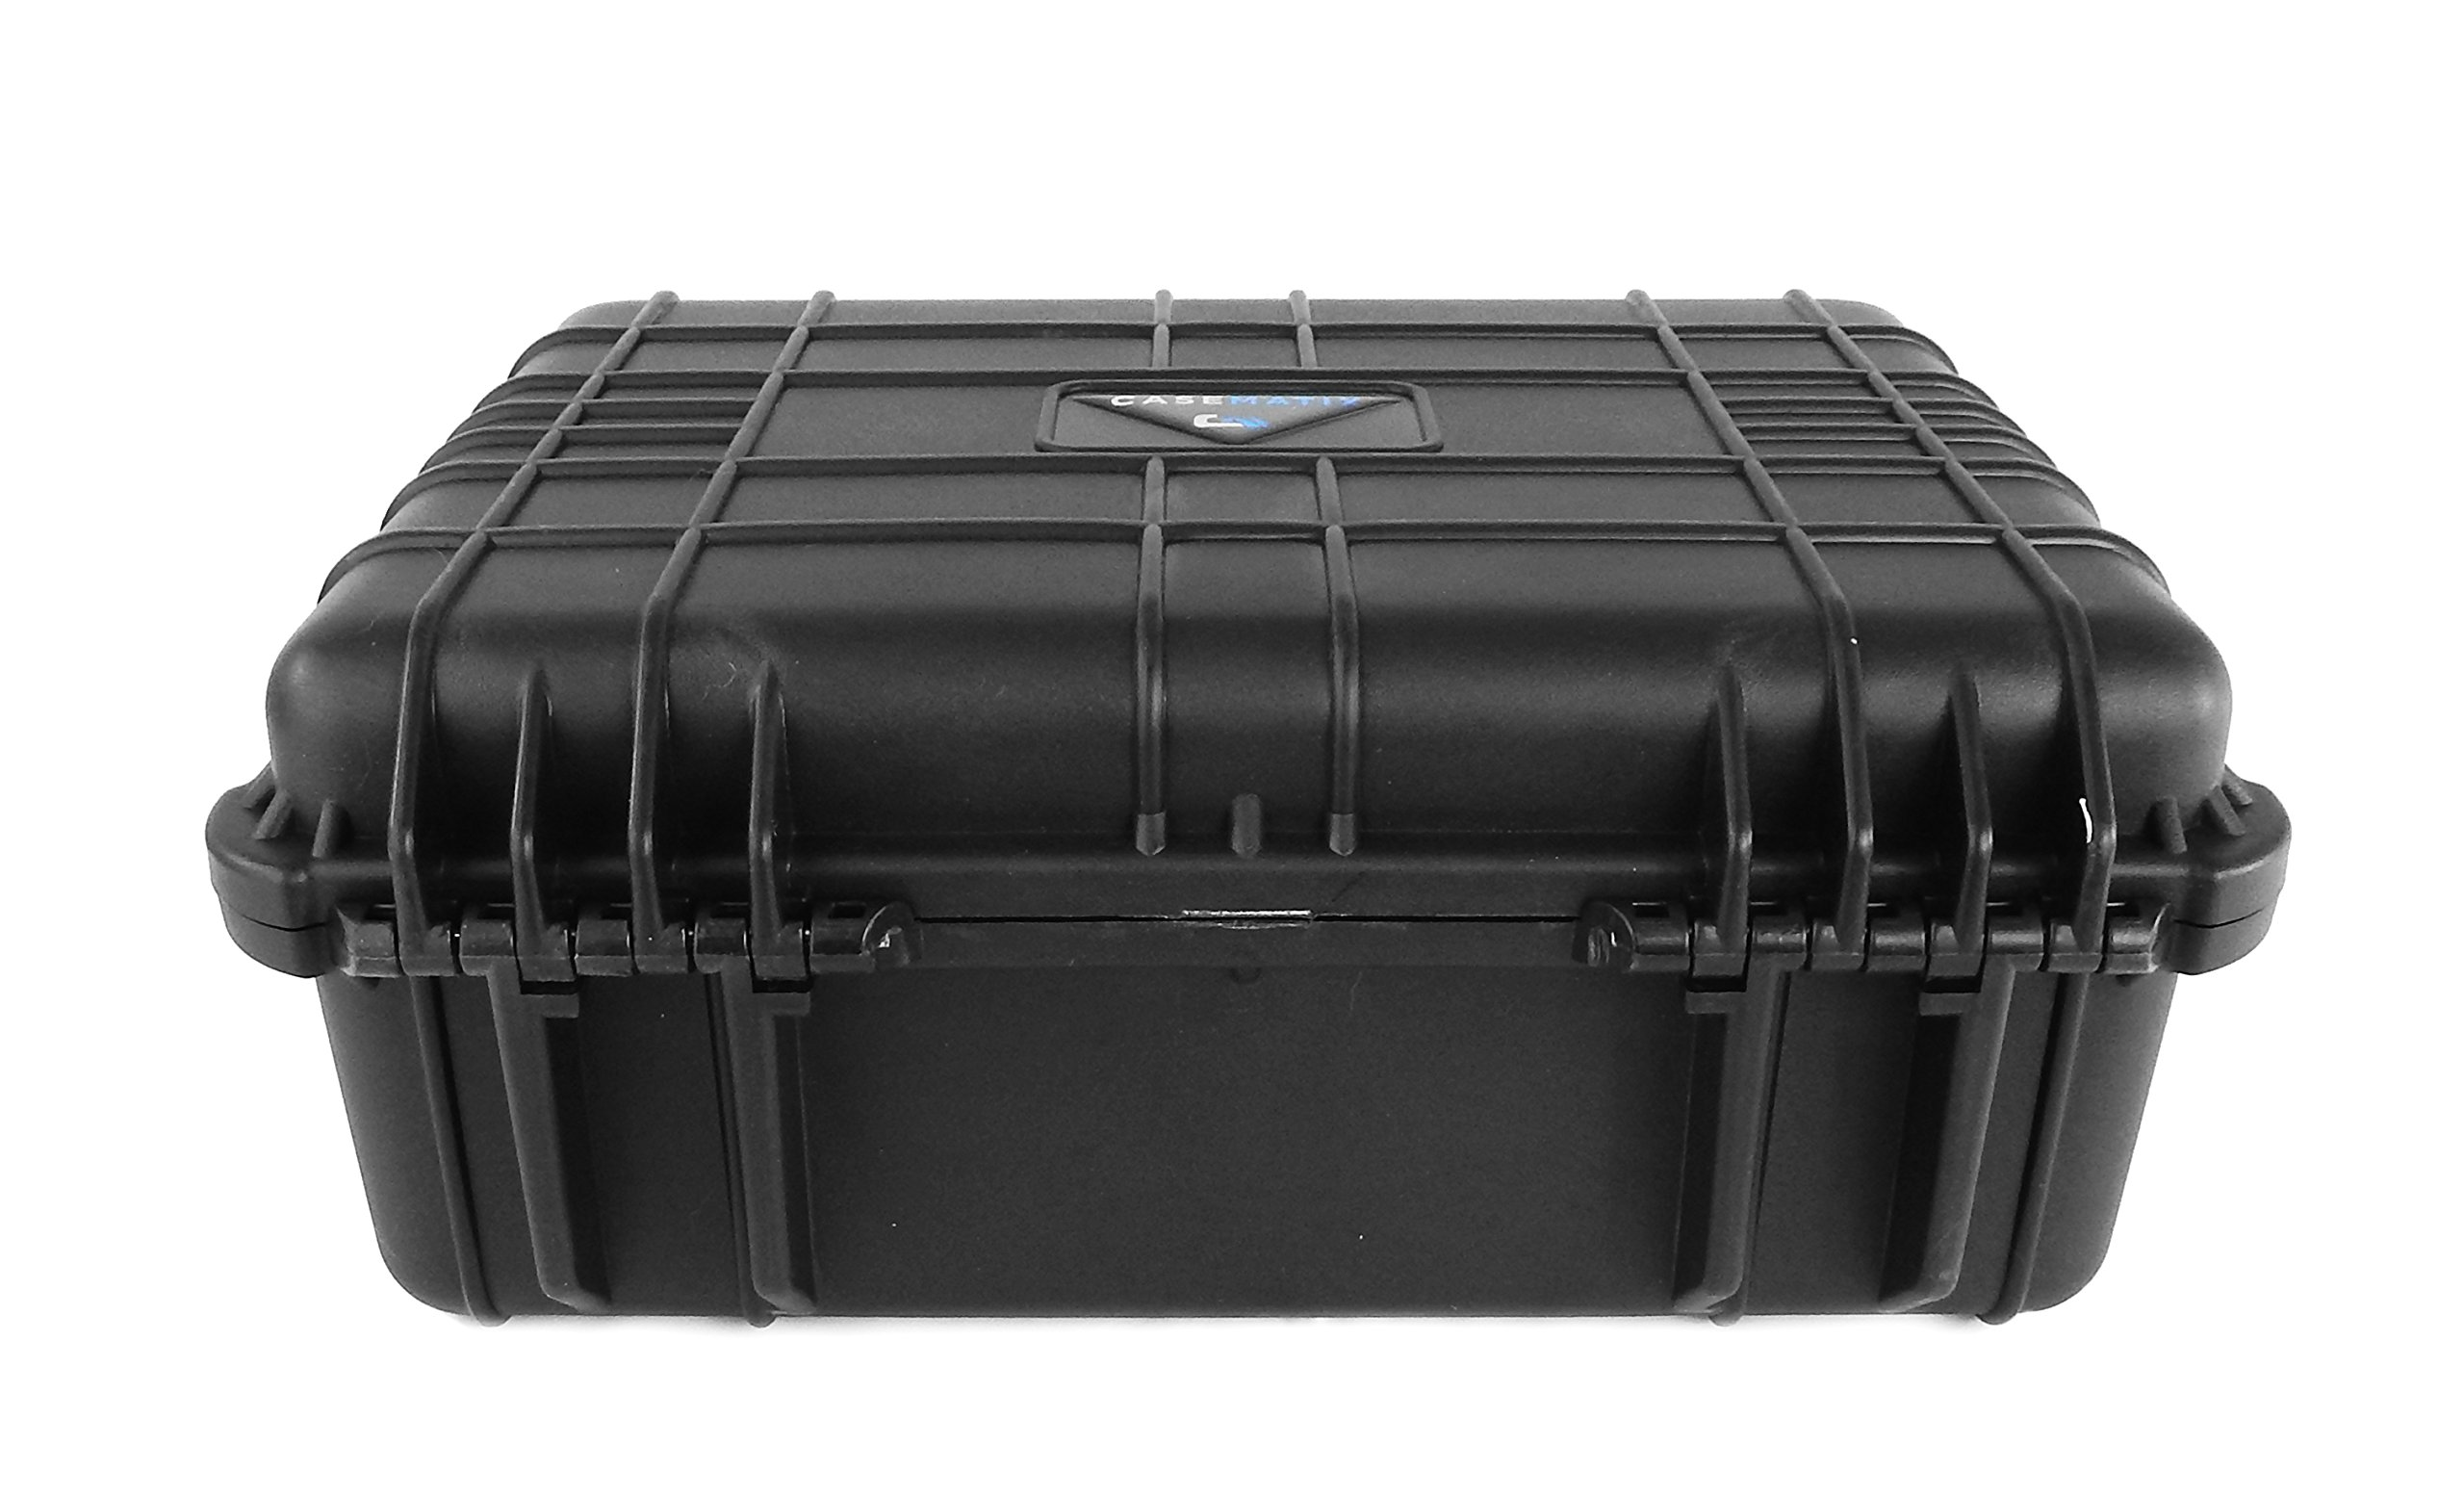 CASEMATIX Waterproof Projector Travel Case For DBPOWER T22 HD Video Projector 2400 Lumens , Remote , HDMI Cable , AV Cable , Power Supply and Accessories by CASEMATIX (Image #5)